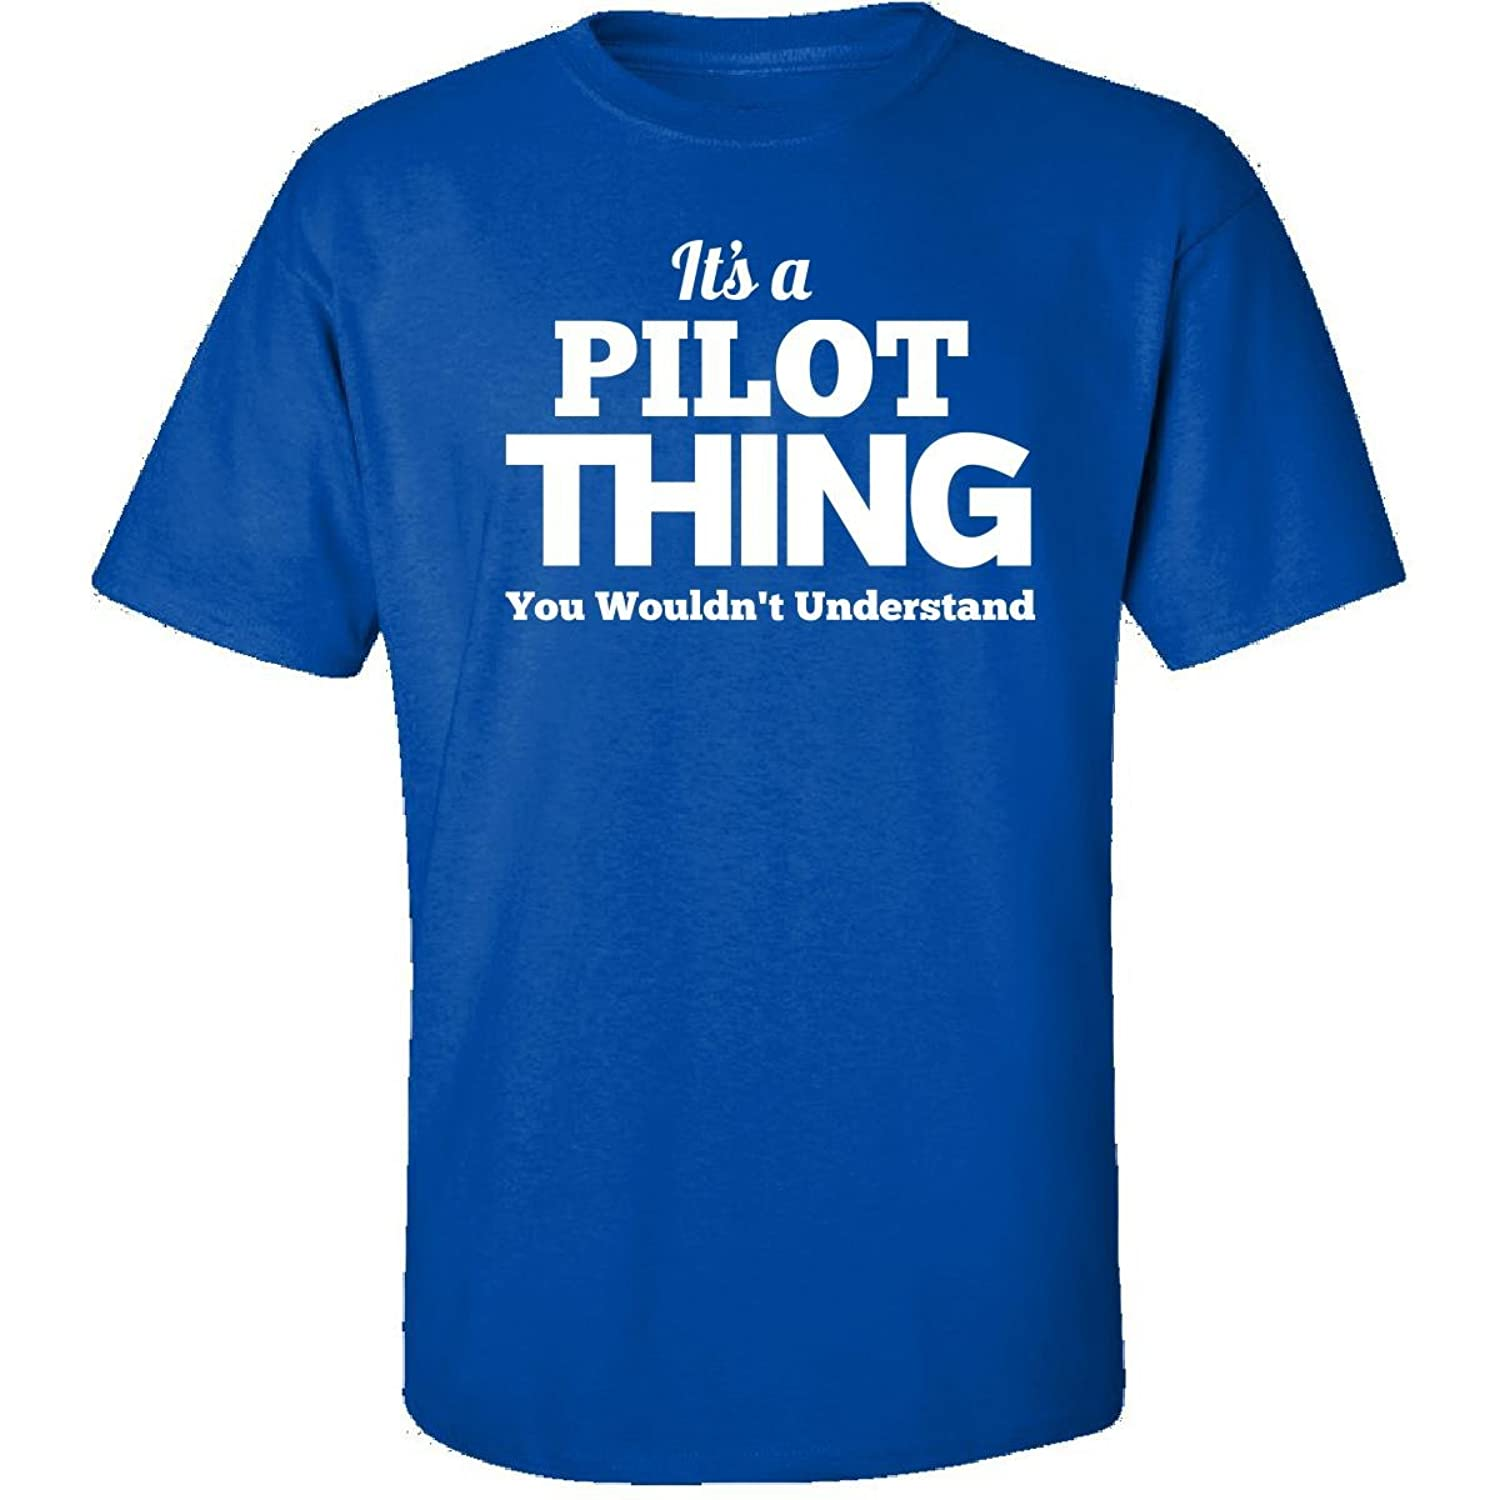 Its A Pilot Thing You Wouldnt Understand - Adult Shirt